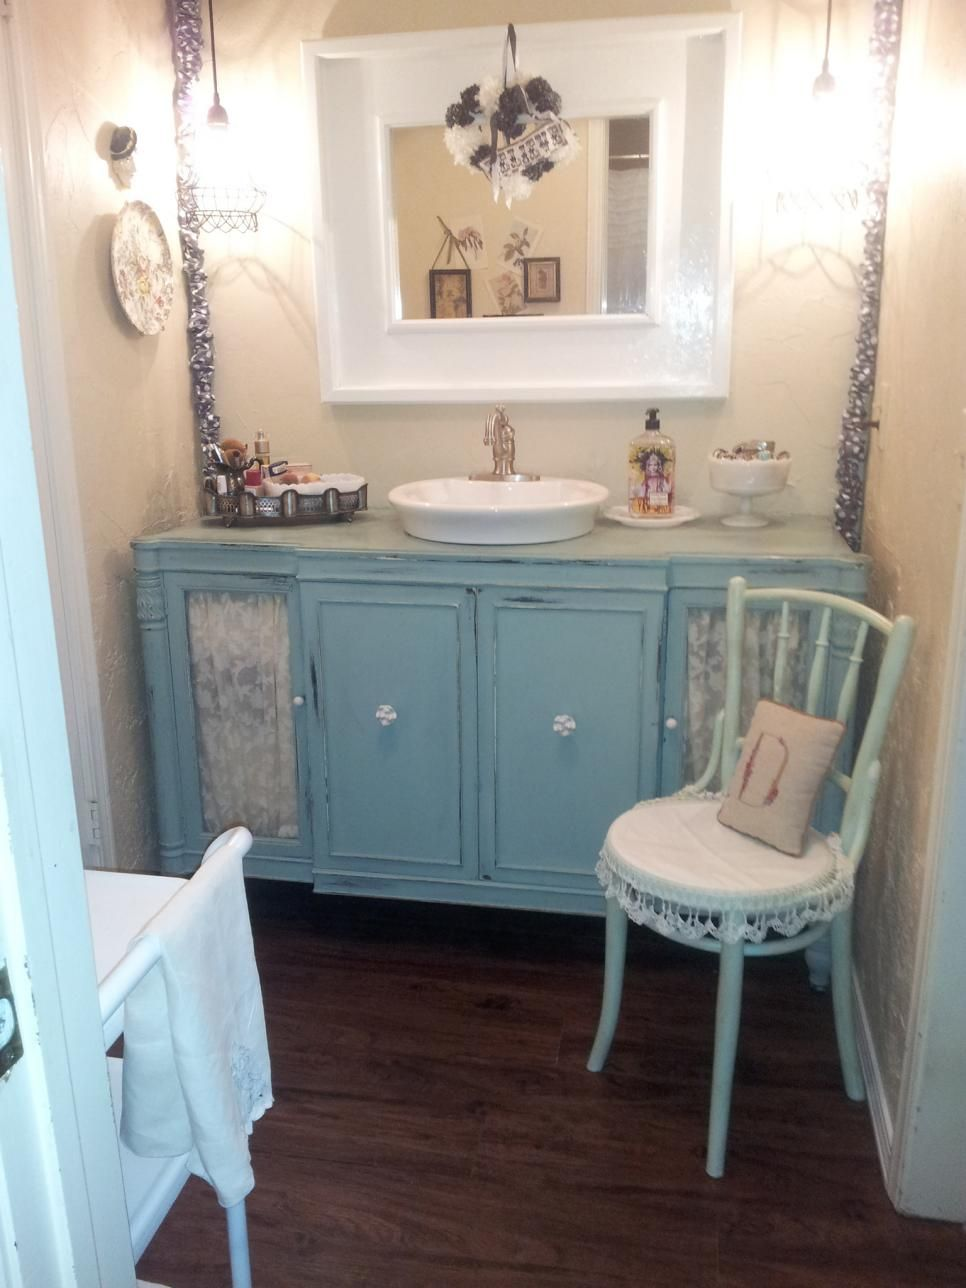 18 Savvy Bathroom Vanity Storage Ideas  Bathroom Vanities Buffet Adorable Design A Bathroom Vanity Inspiration Design